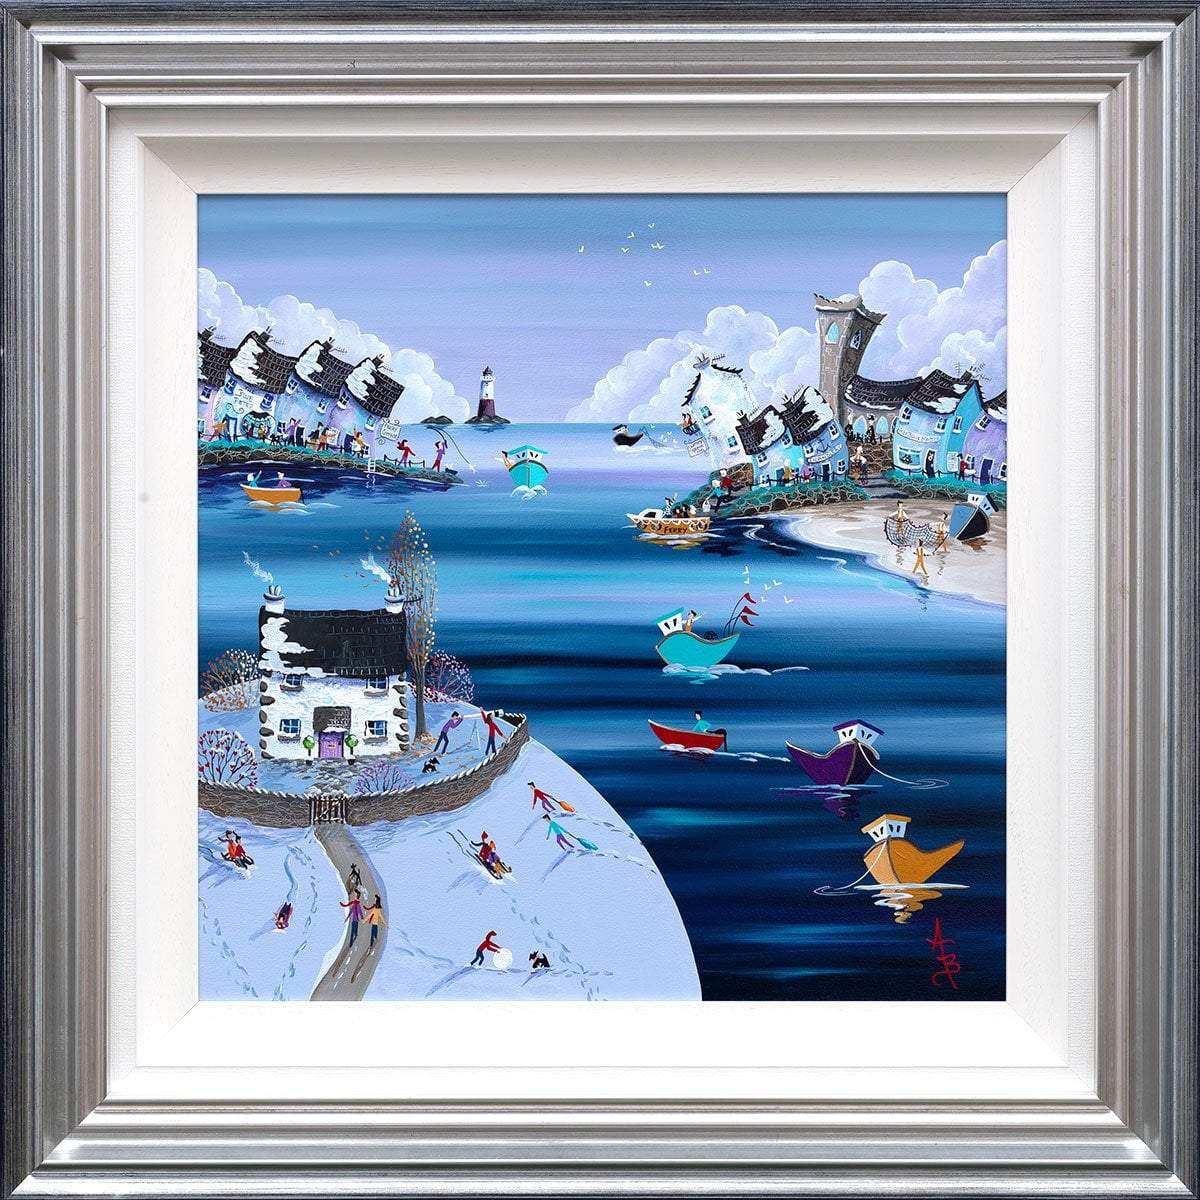 Fun in the snow at Lookout Cottage - Original Anne Blundell Framed